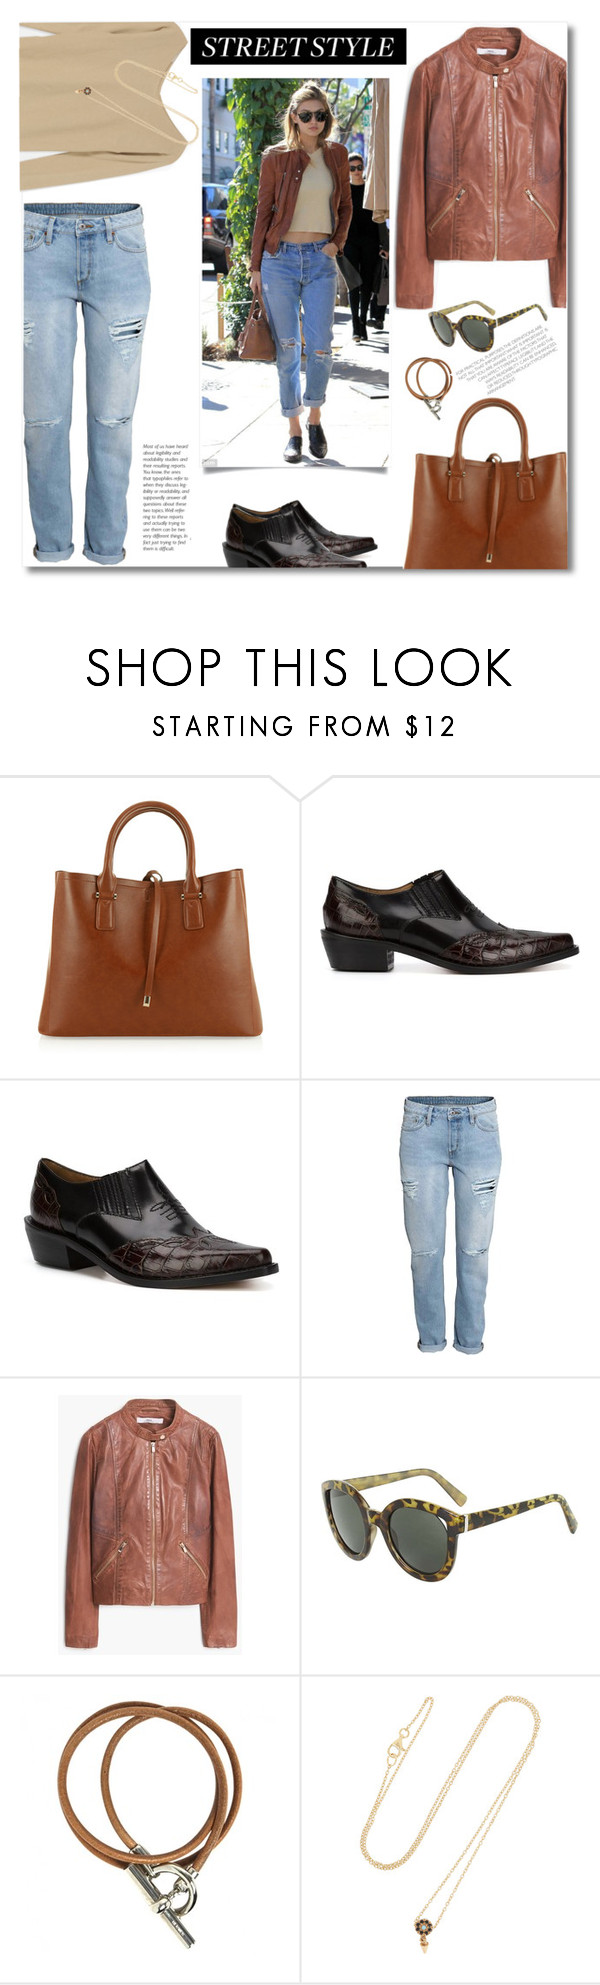 """Cool and casual"" by gifra ❤ liked on Polyvore featuring Ganni, MANGO, Topshop, Hermès, IaM by Ileana Makri, women's clothing, women, female, woman and misses"